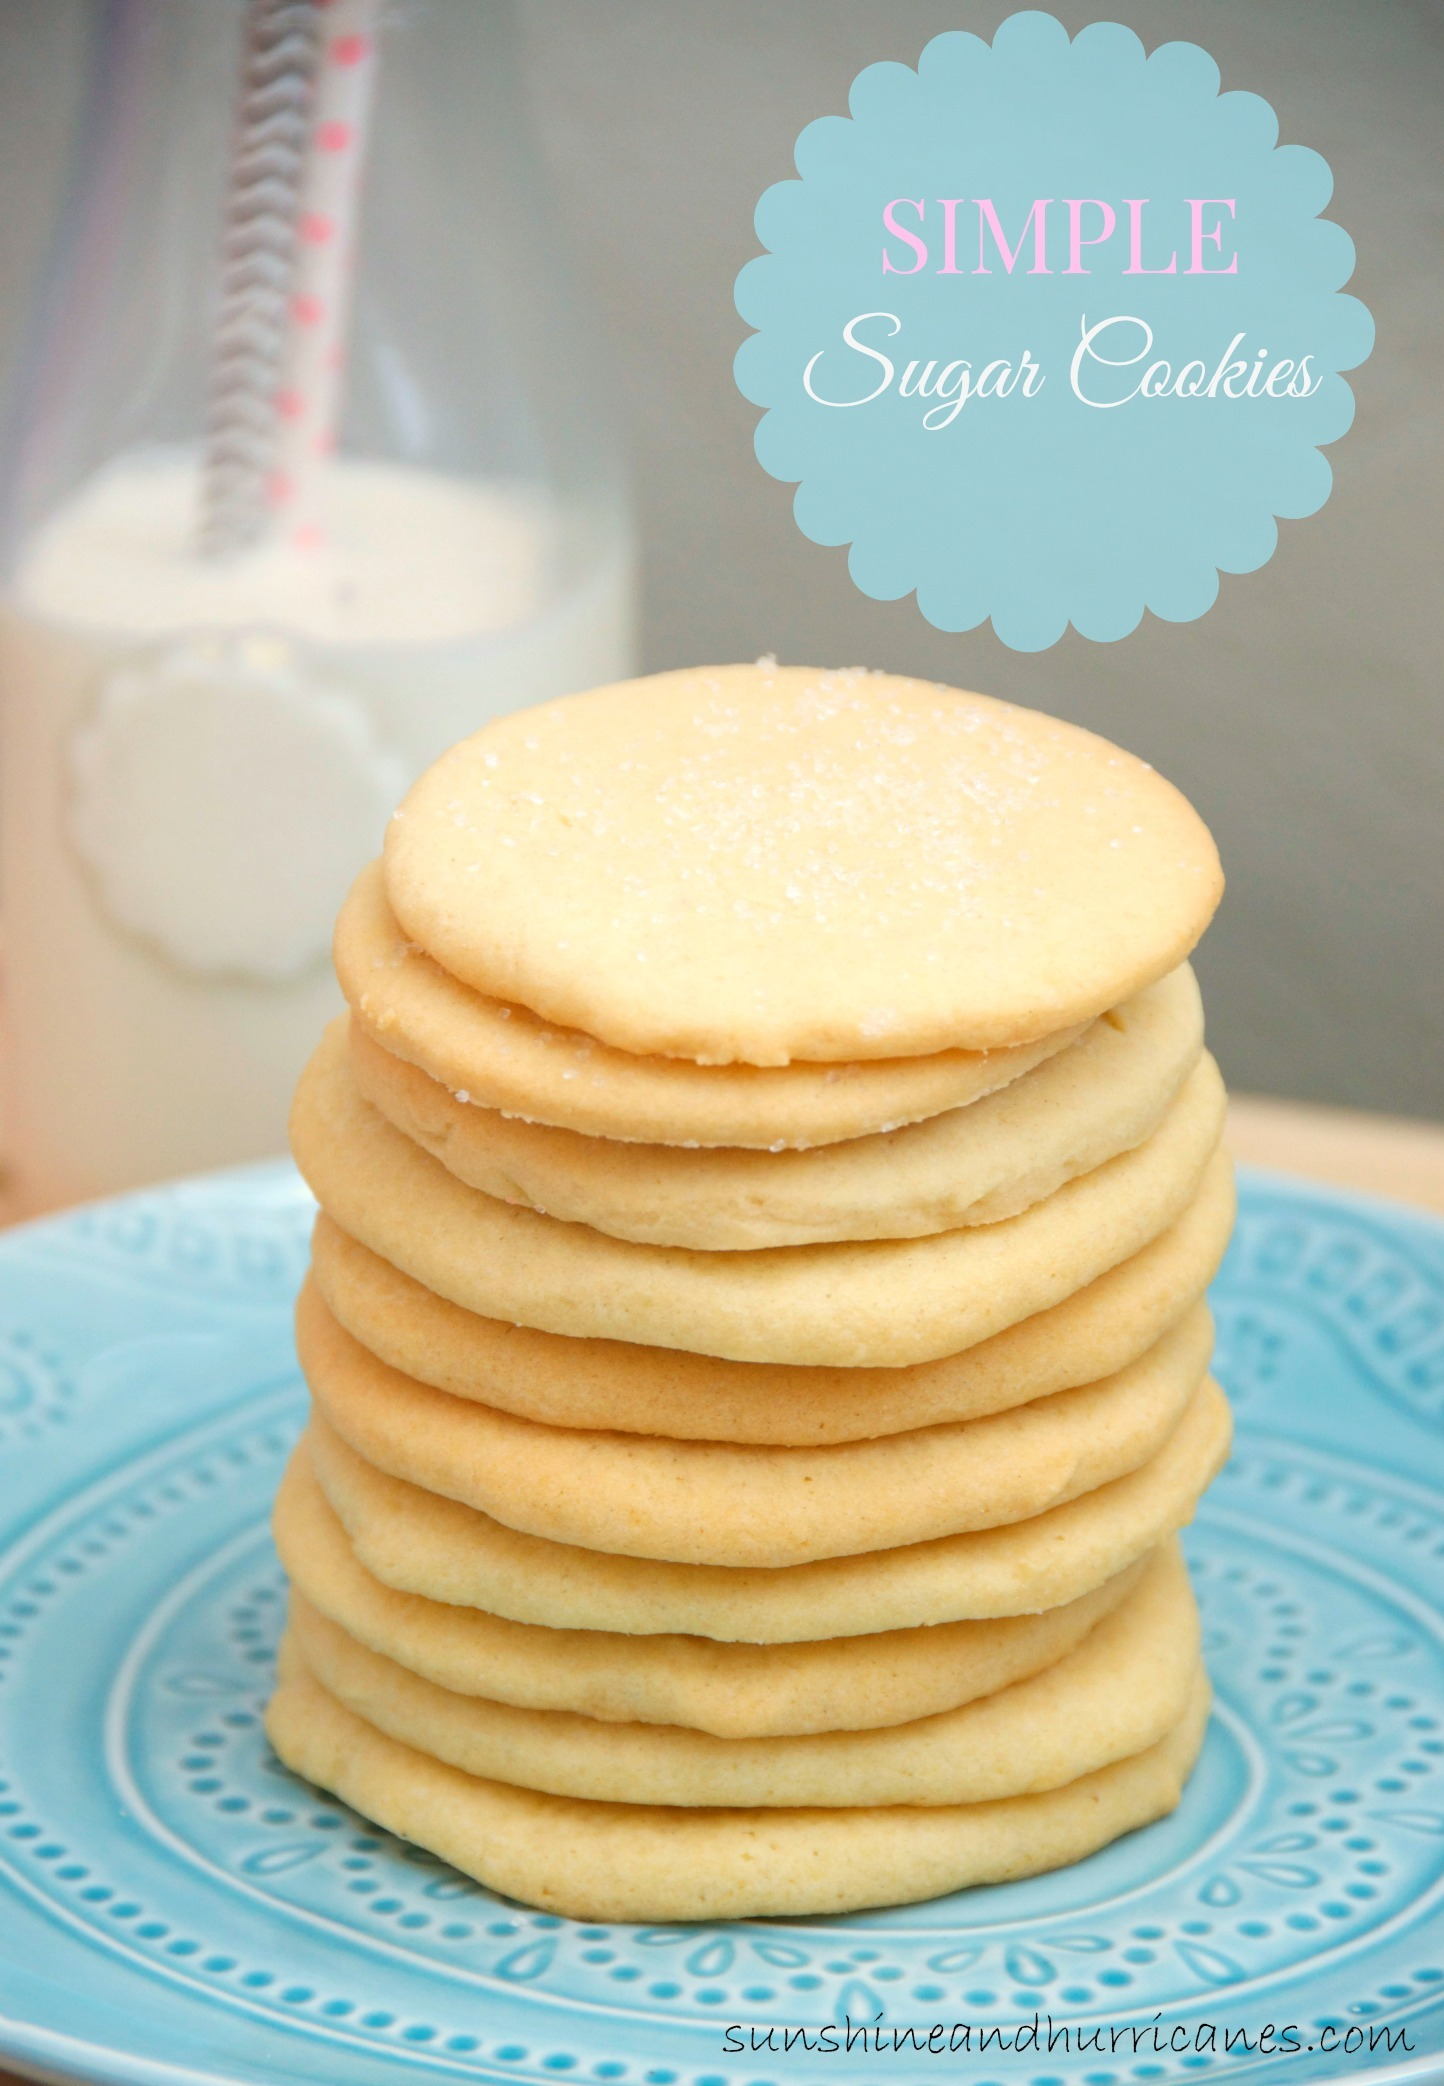 Looking for an Easy Cookie Recipe, that is Great for any Occasion. This Simple Sugar Cookies Make Excellent Cut-Outs or A Sweet Snack for Any Day. A Favorite Traditional Cooke Recipe that You'll Always Want to Keep On Hand.